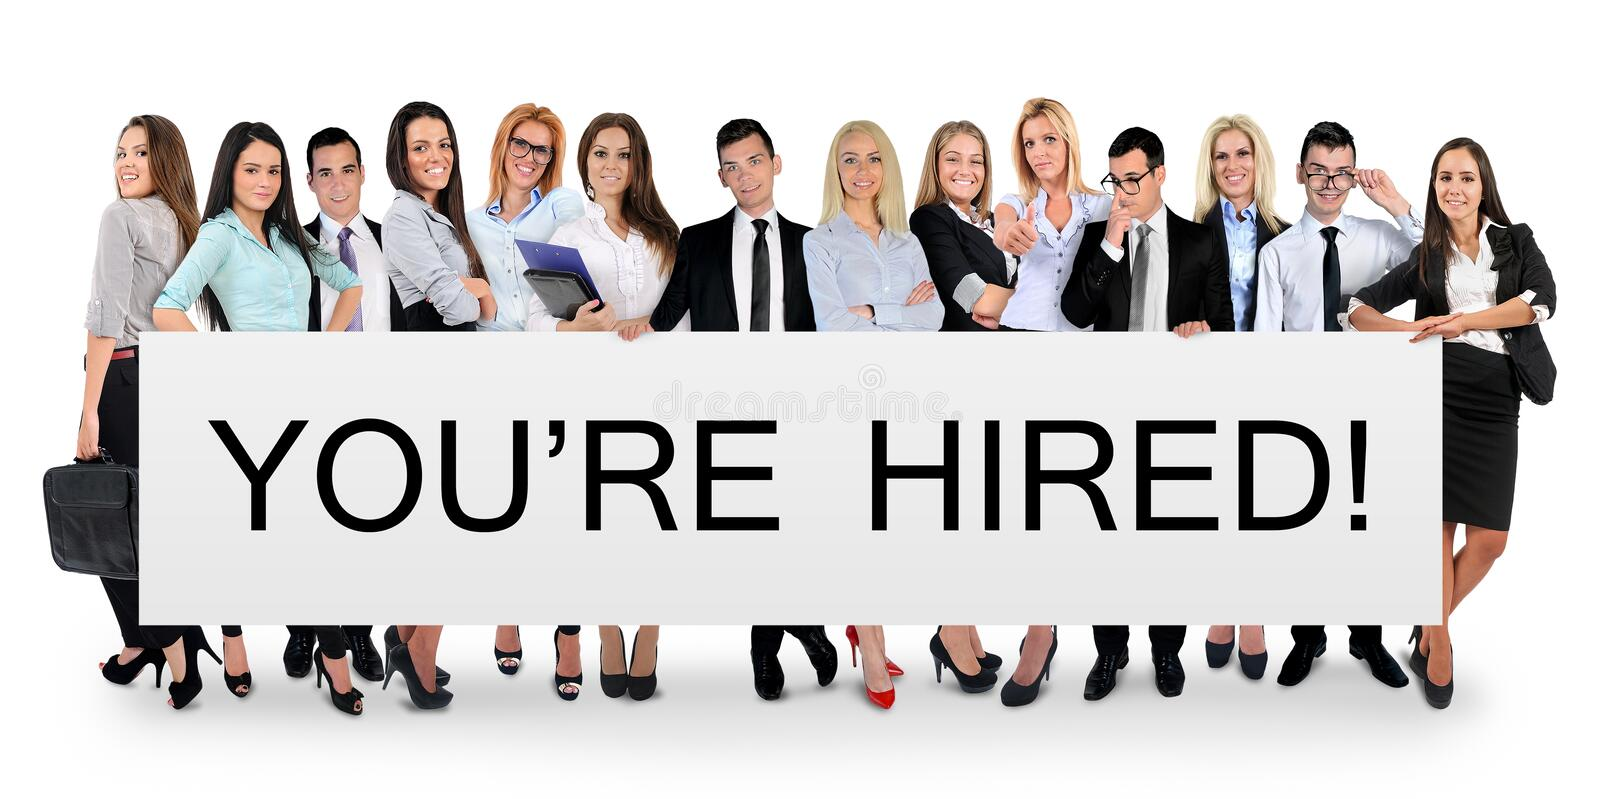 You are hired word. Writing on white banner royalty free stock photography